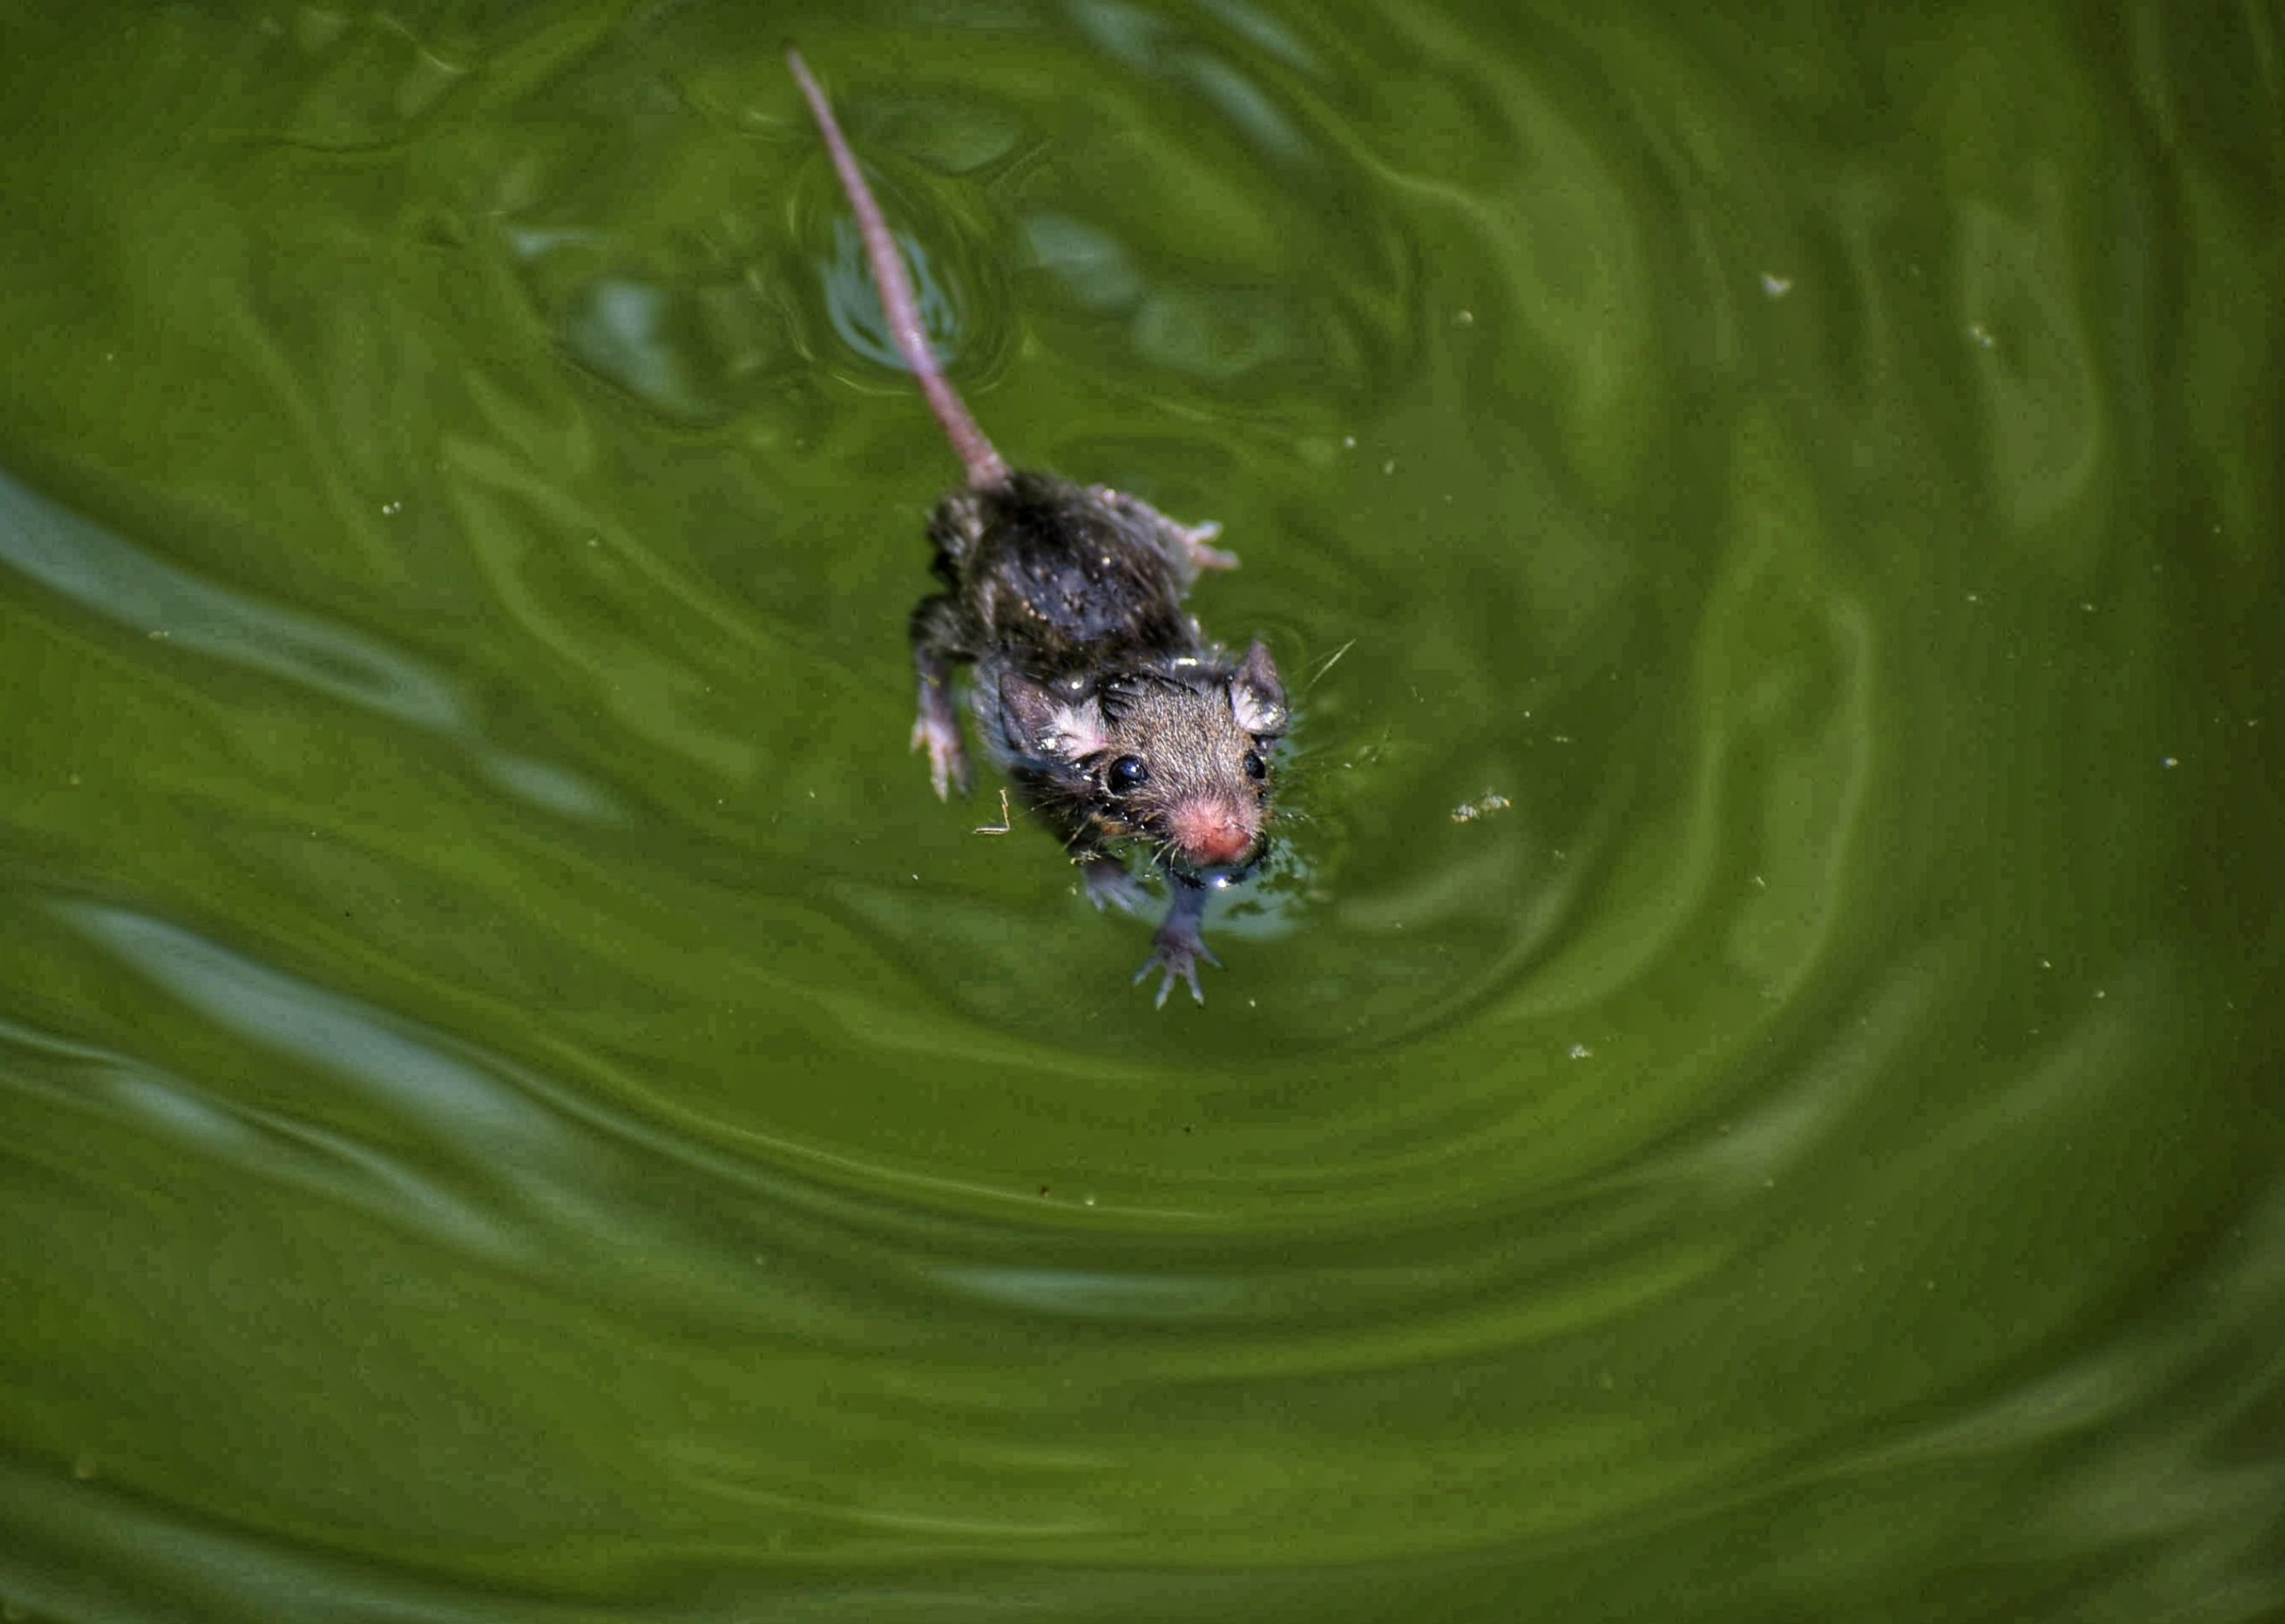 A rat in water